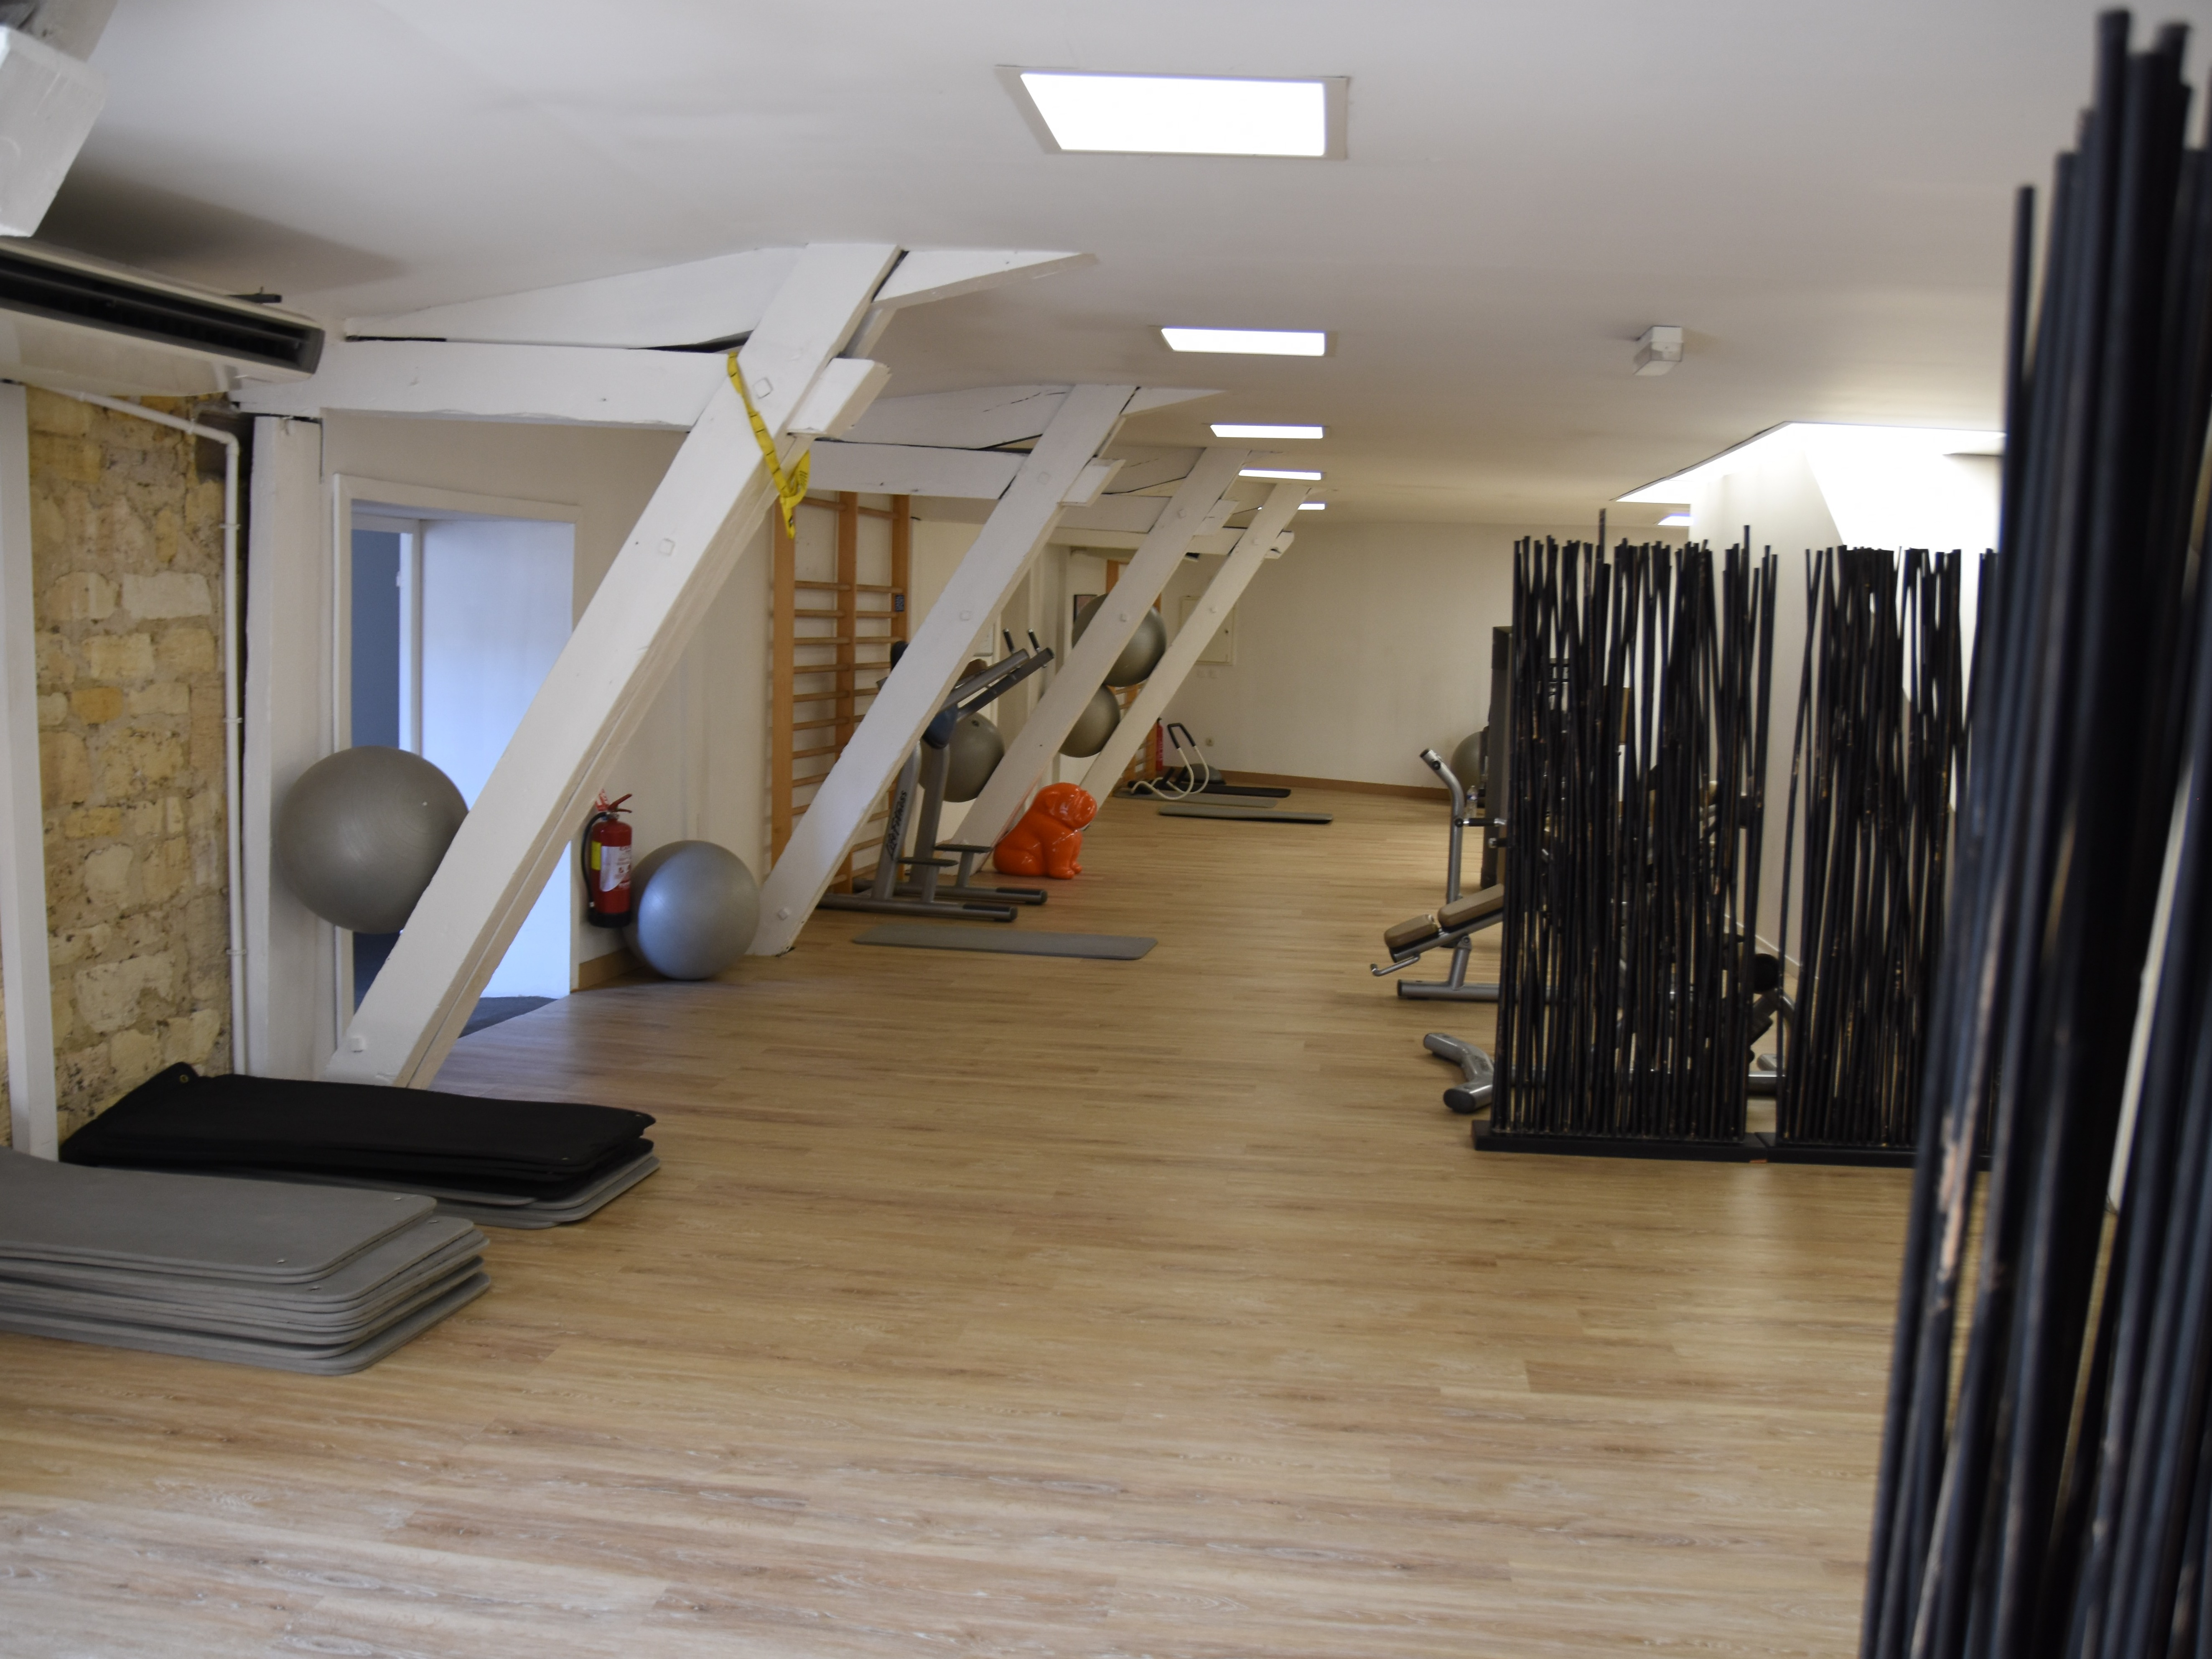 Elevate Premium Fitness Chartrons